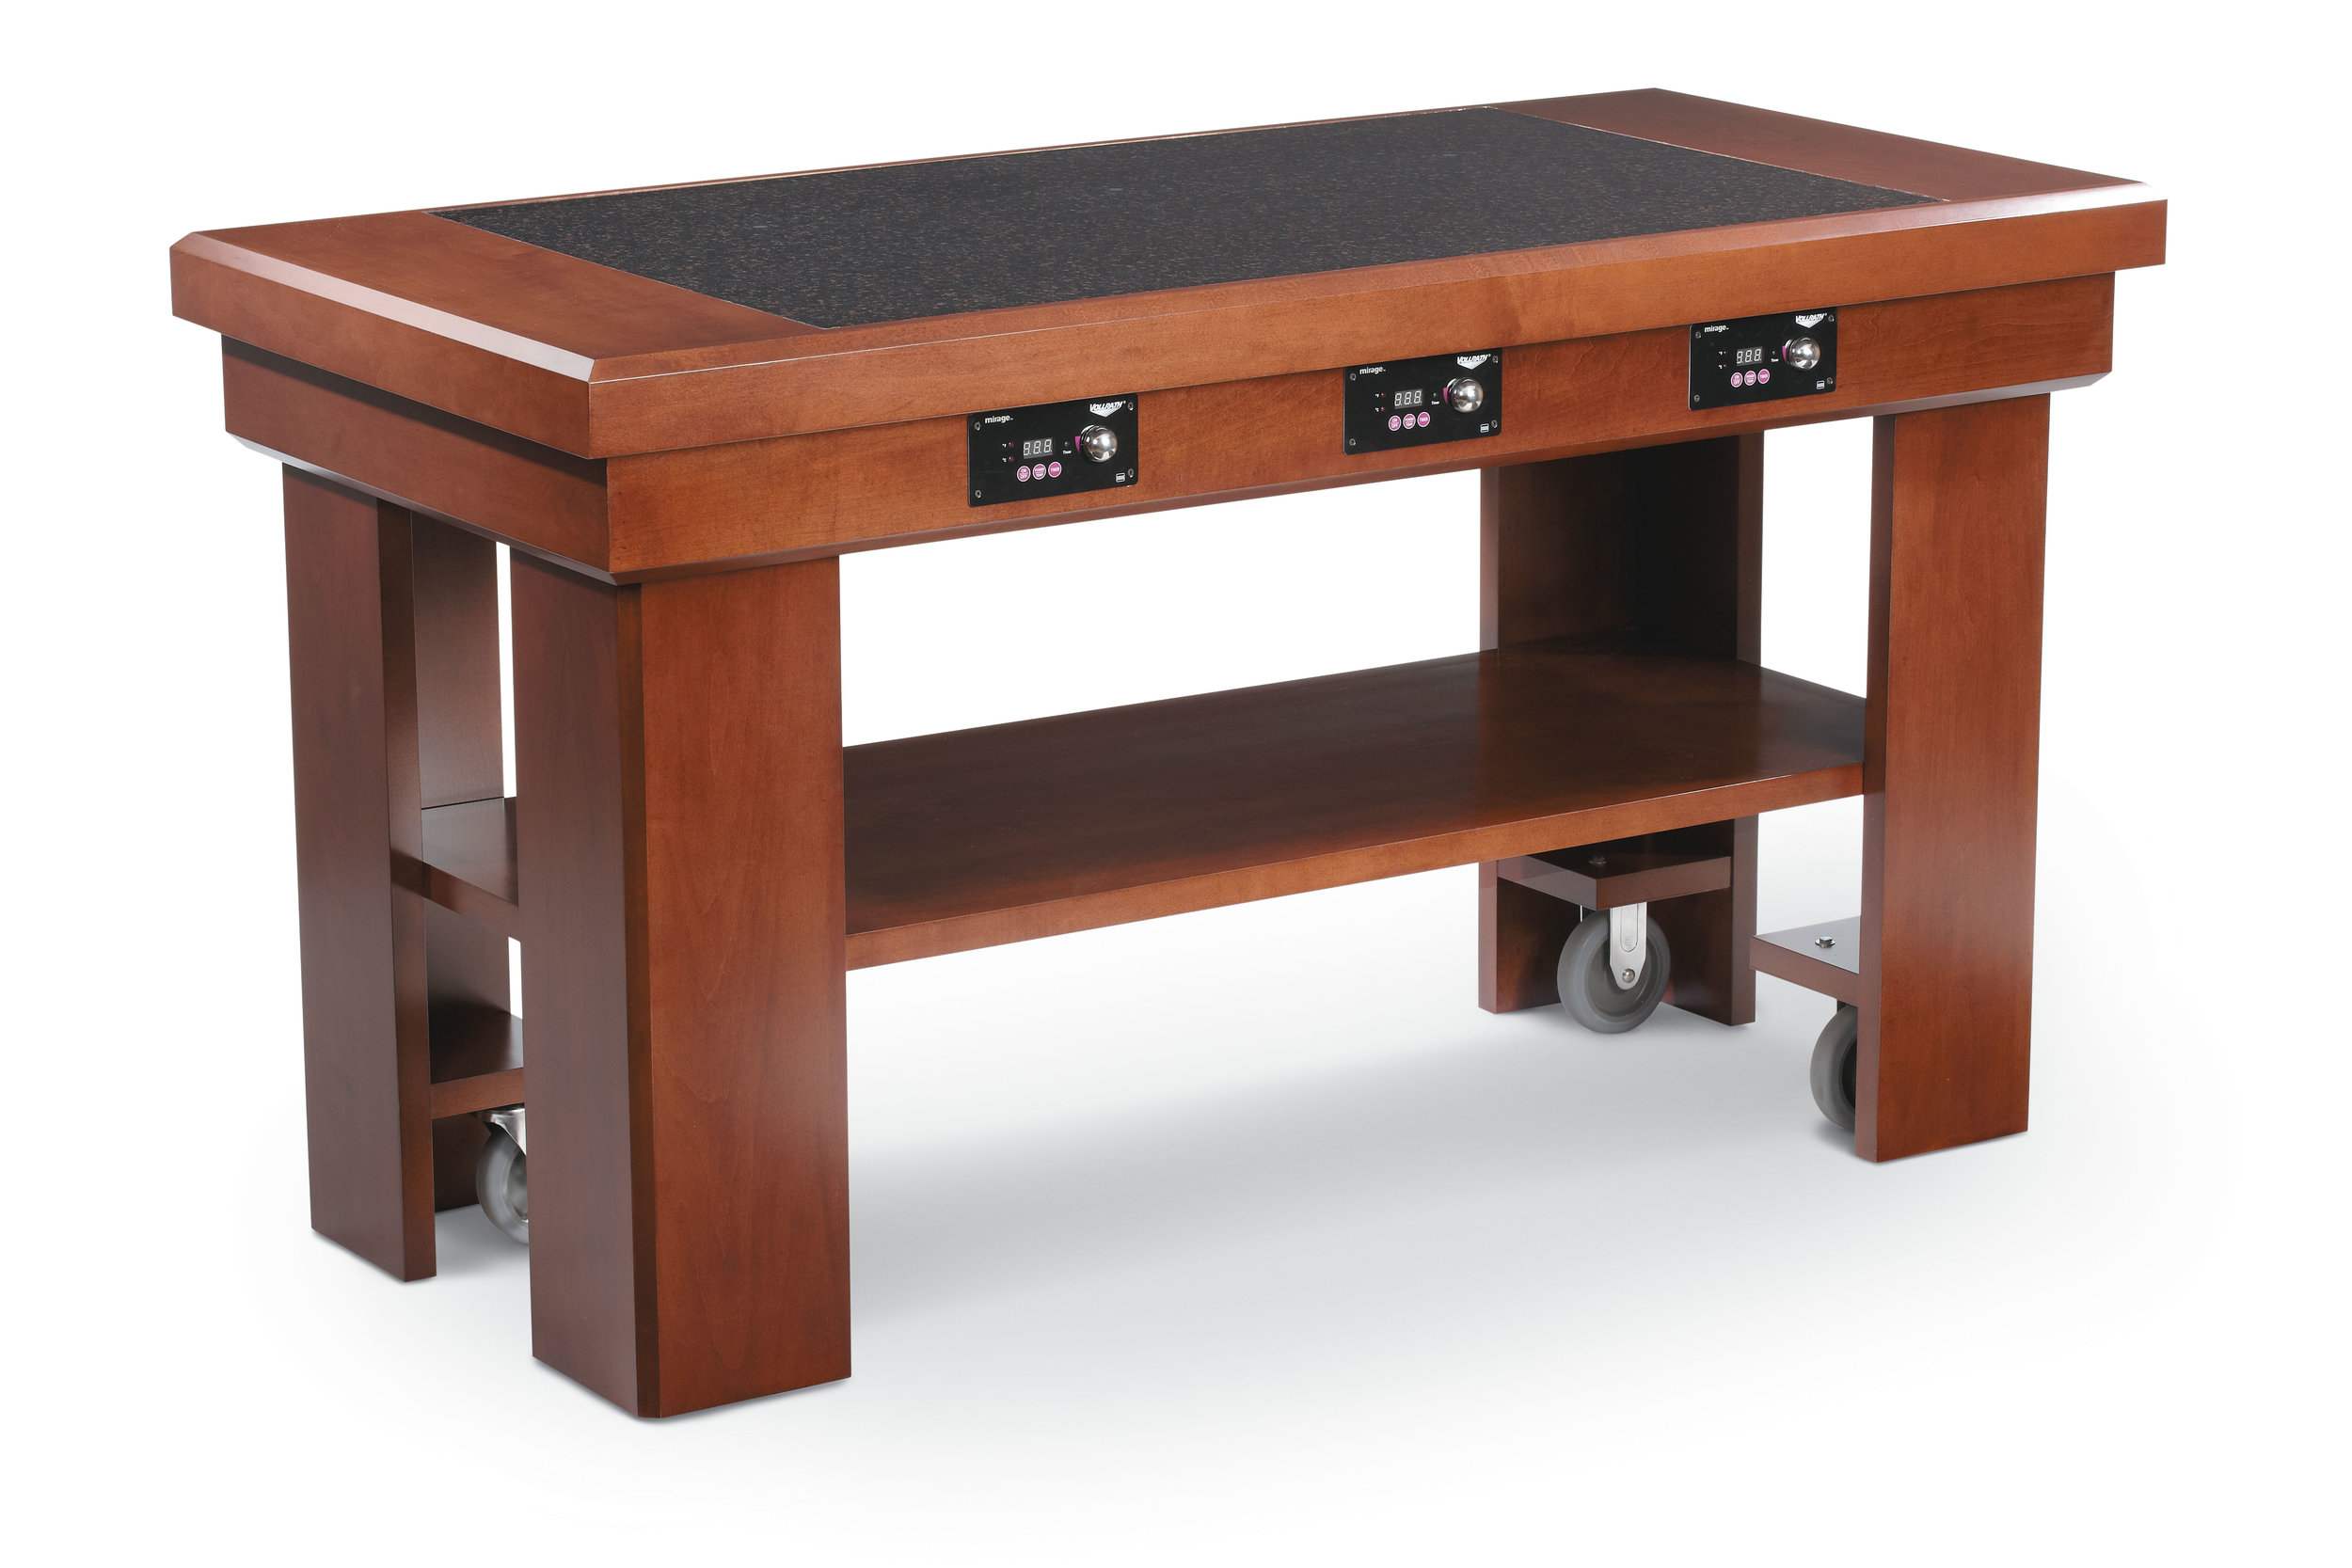 Vollrath Induction Buffet Table